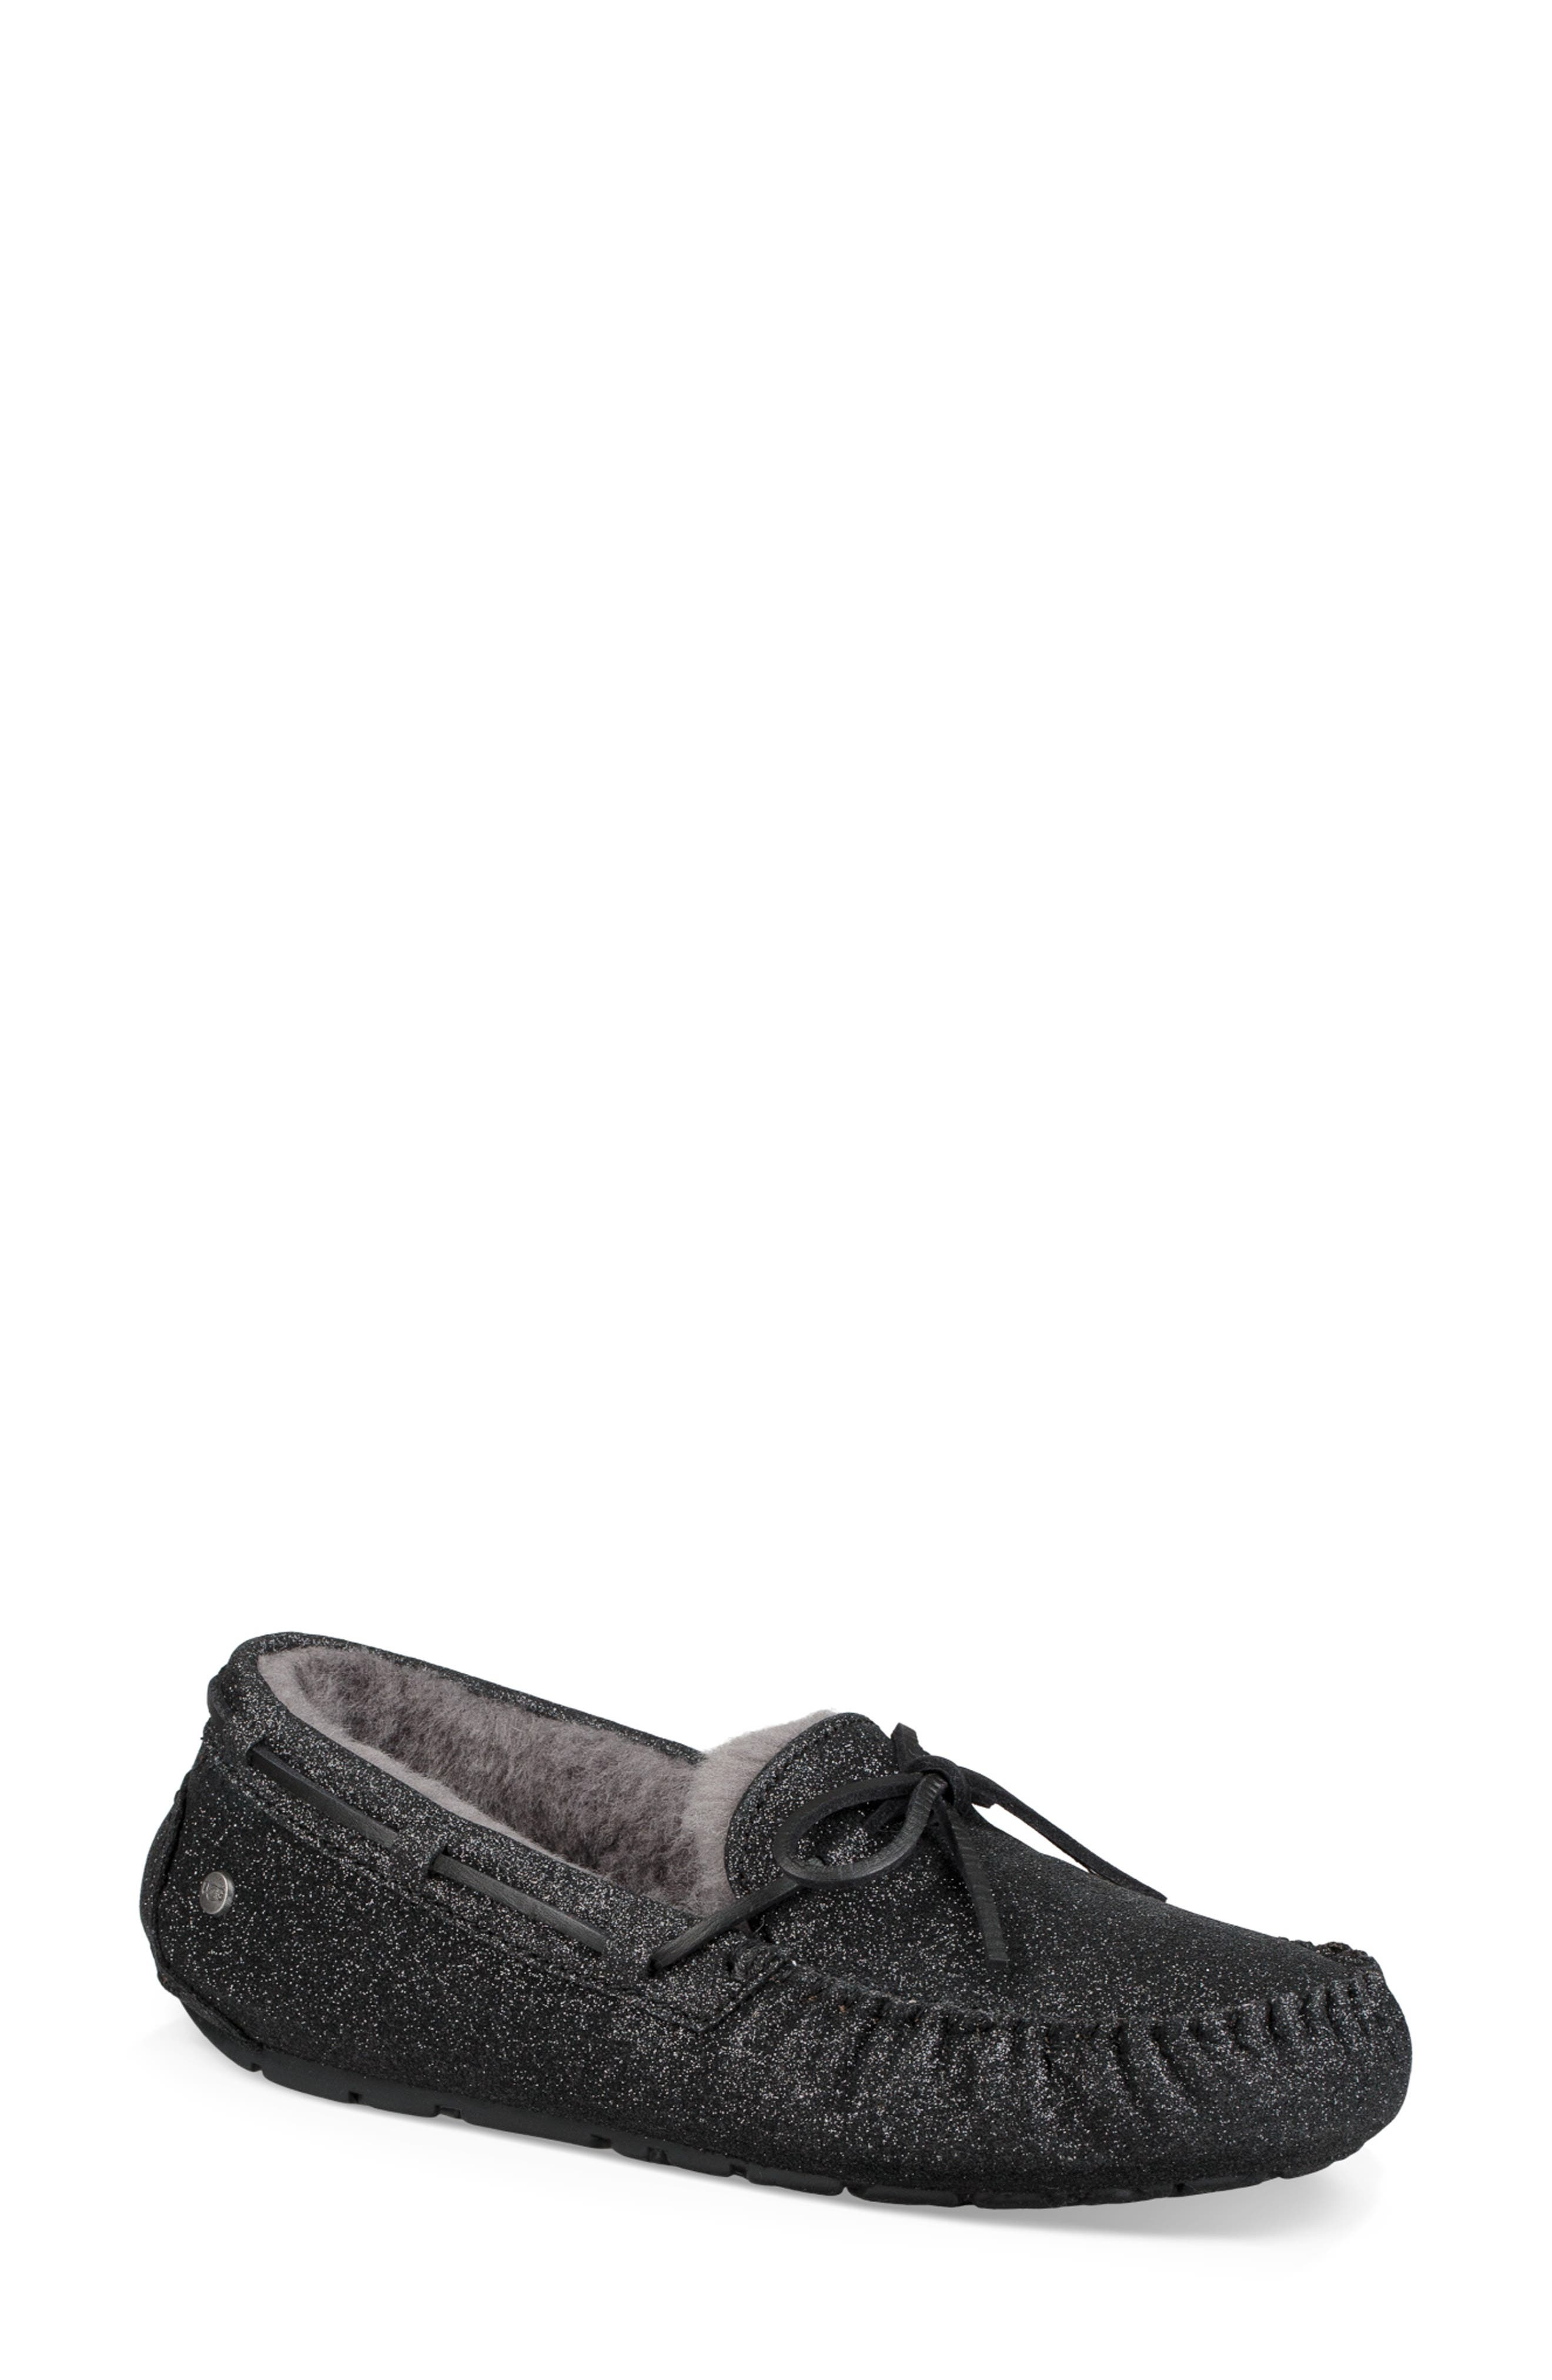 Dakota Sparkle Slipper,                         Main,                         color, BLACK